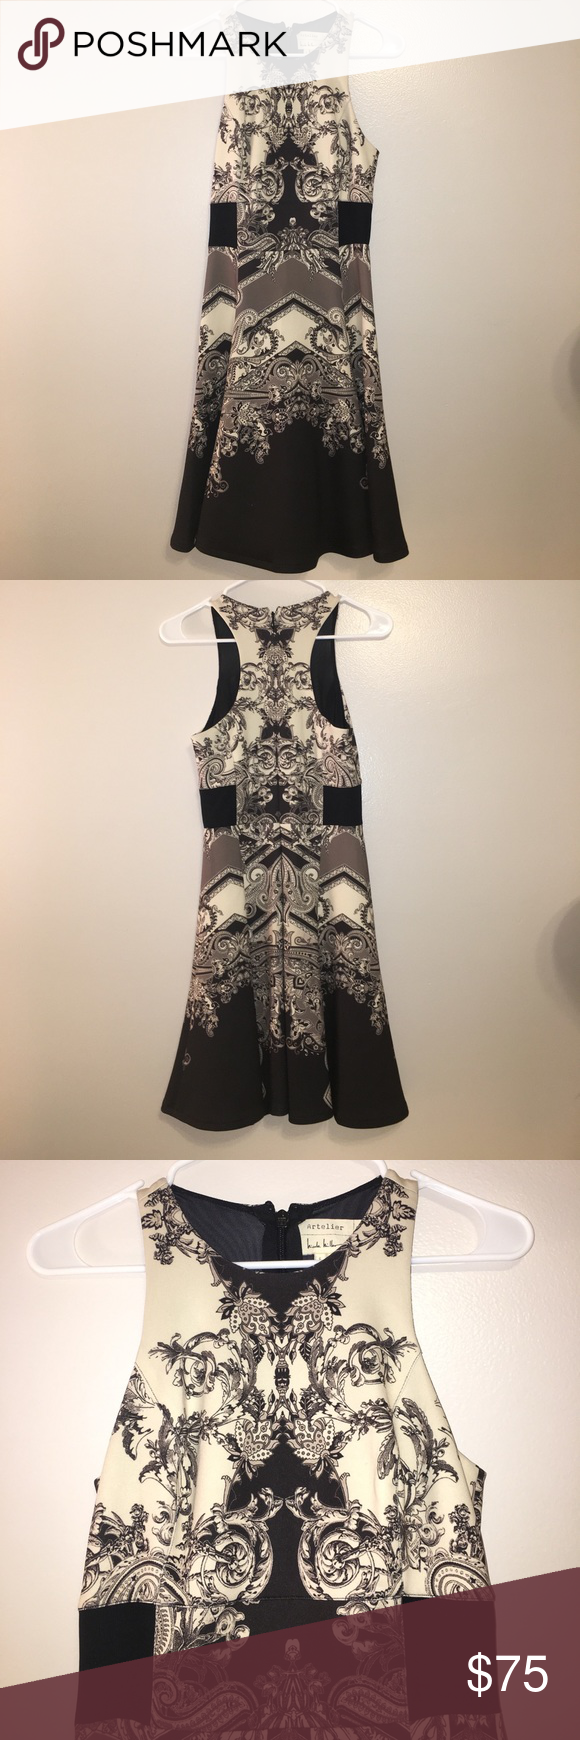 NICOLE MILLER Beautiful Nicole Miller dress! Great for a special occasion! Nicole Miller Dresses Mini